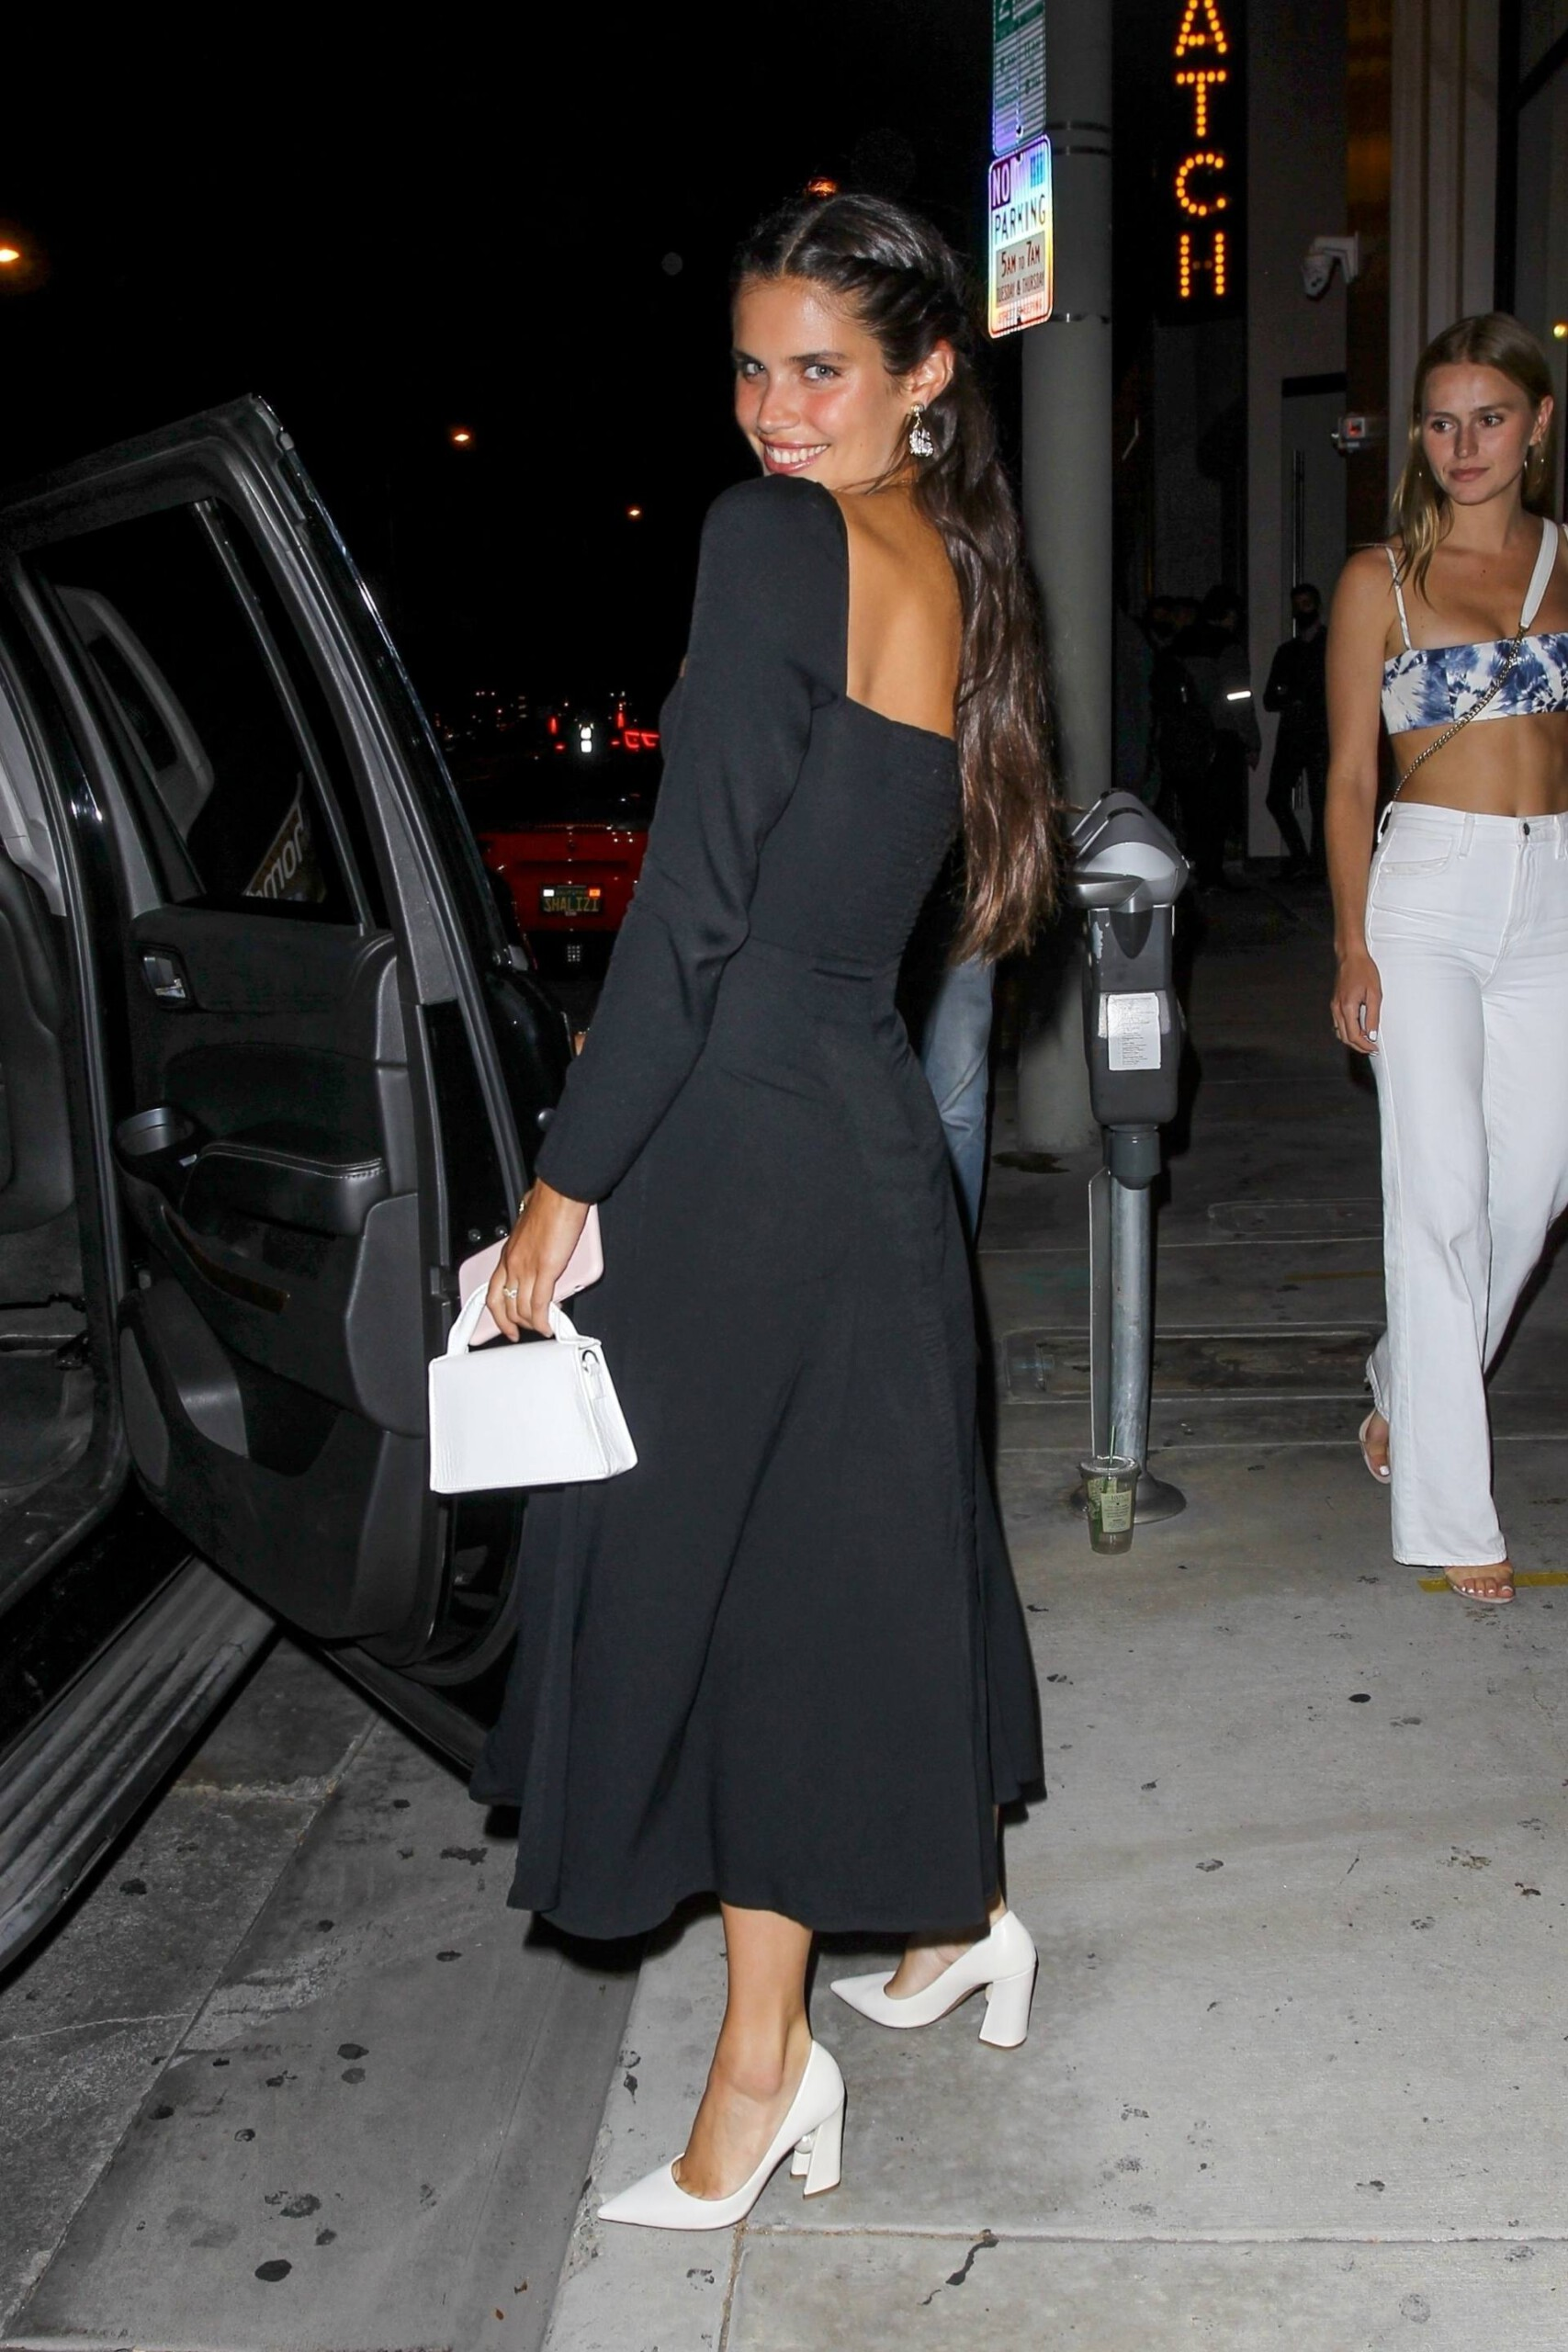 Sara Sampaio – Beautiful In Sexy Black Dress At Catch Restaurant In West Hollywood 0022